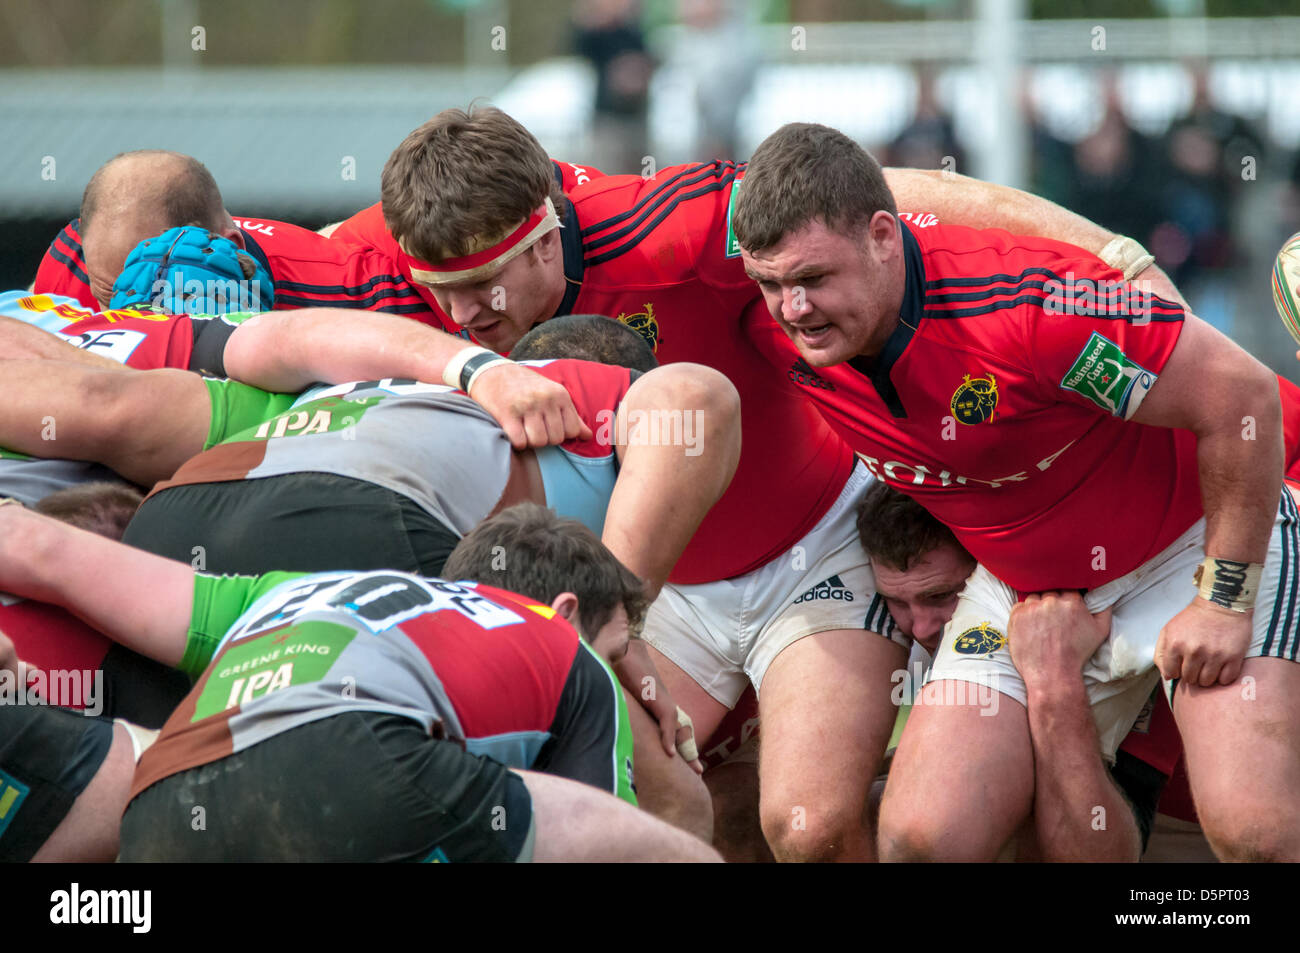 Preparing for the scrum down during the Heineken Cup quarter-final match between Harlequins and Munster at the Twickenham - Stock Image